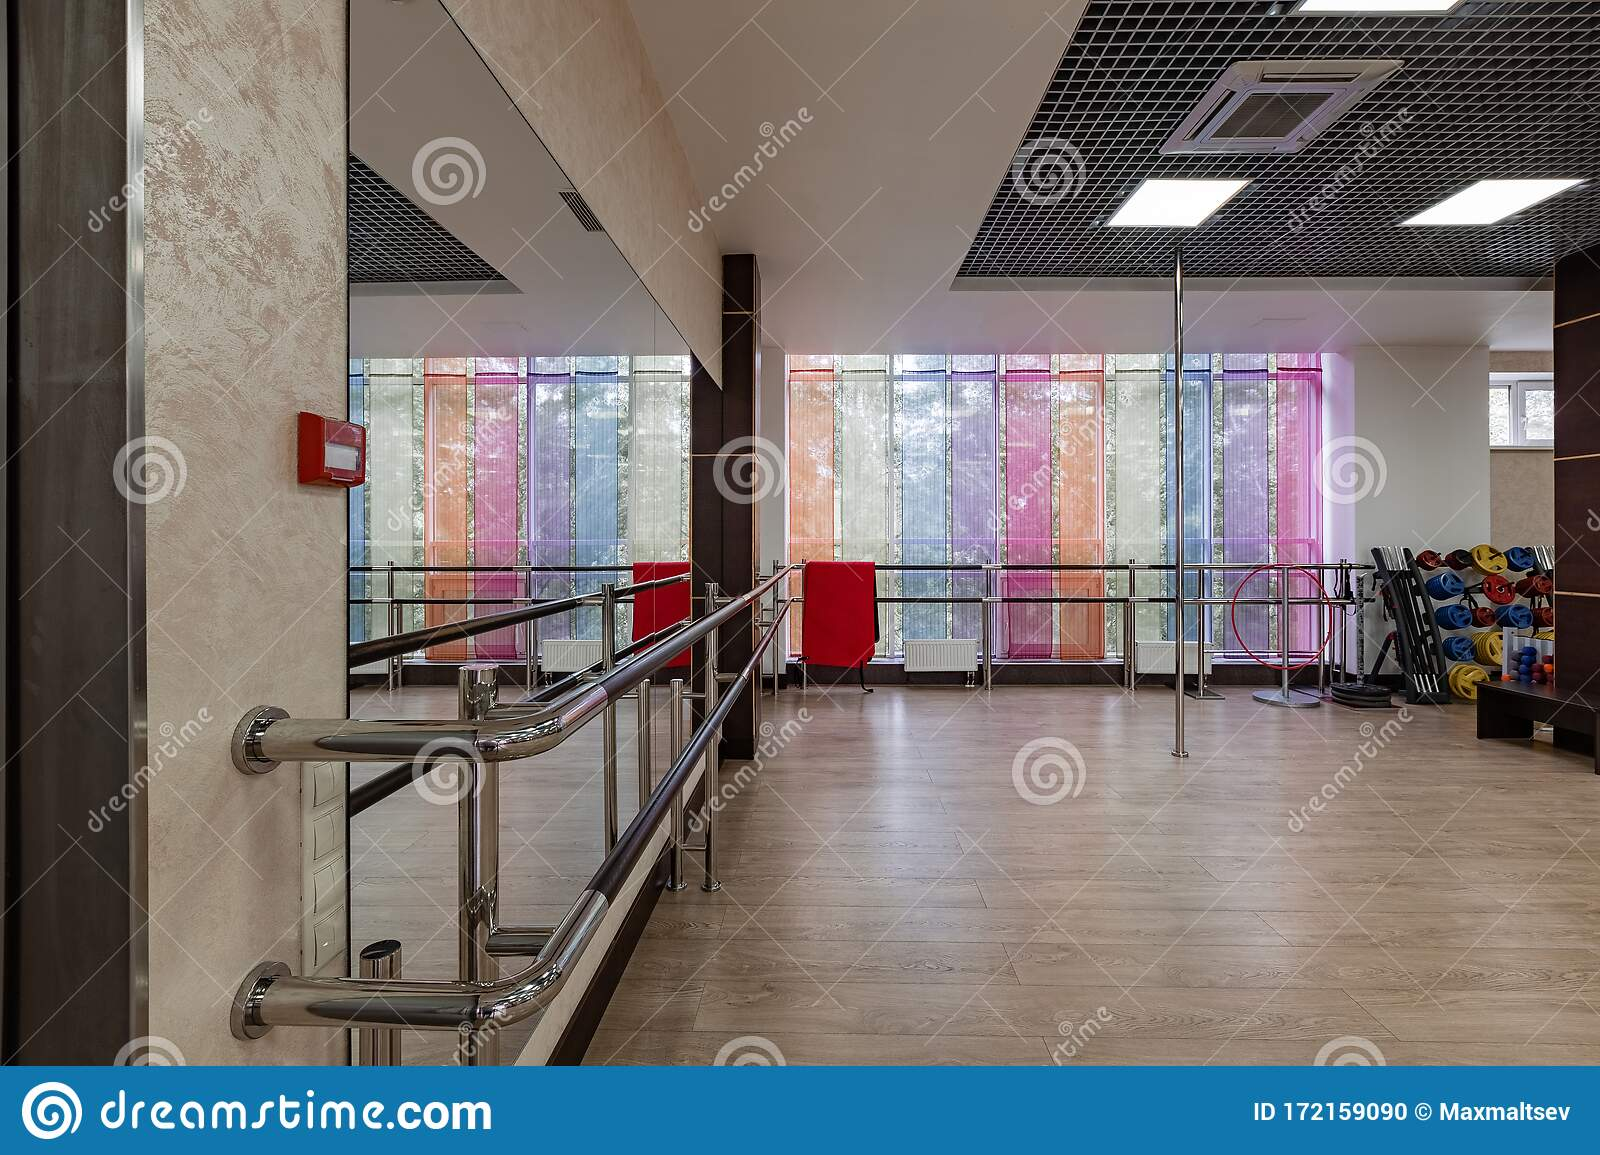 Group Fitness Room Modern Interior Design Fitness Workout Fitness Gym Background Gym Equipment Background Empty Stock Photo Image Of Exercise Cardio 172159090